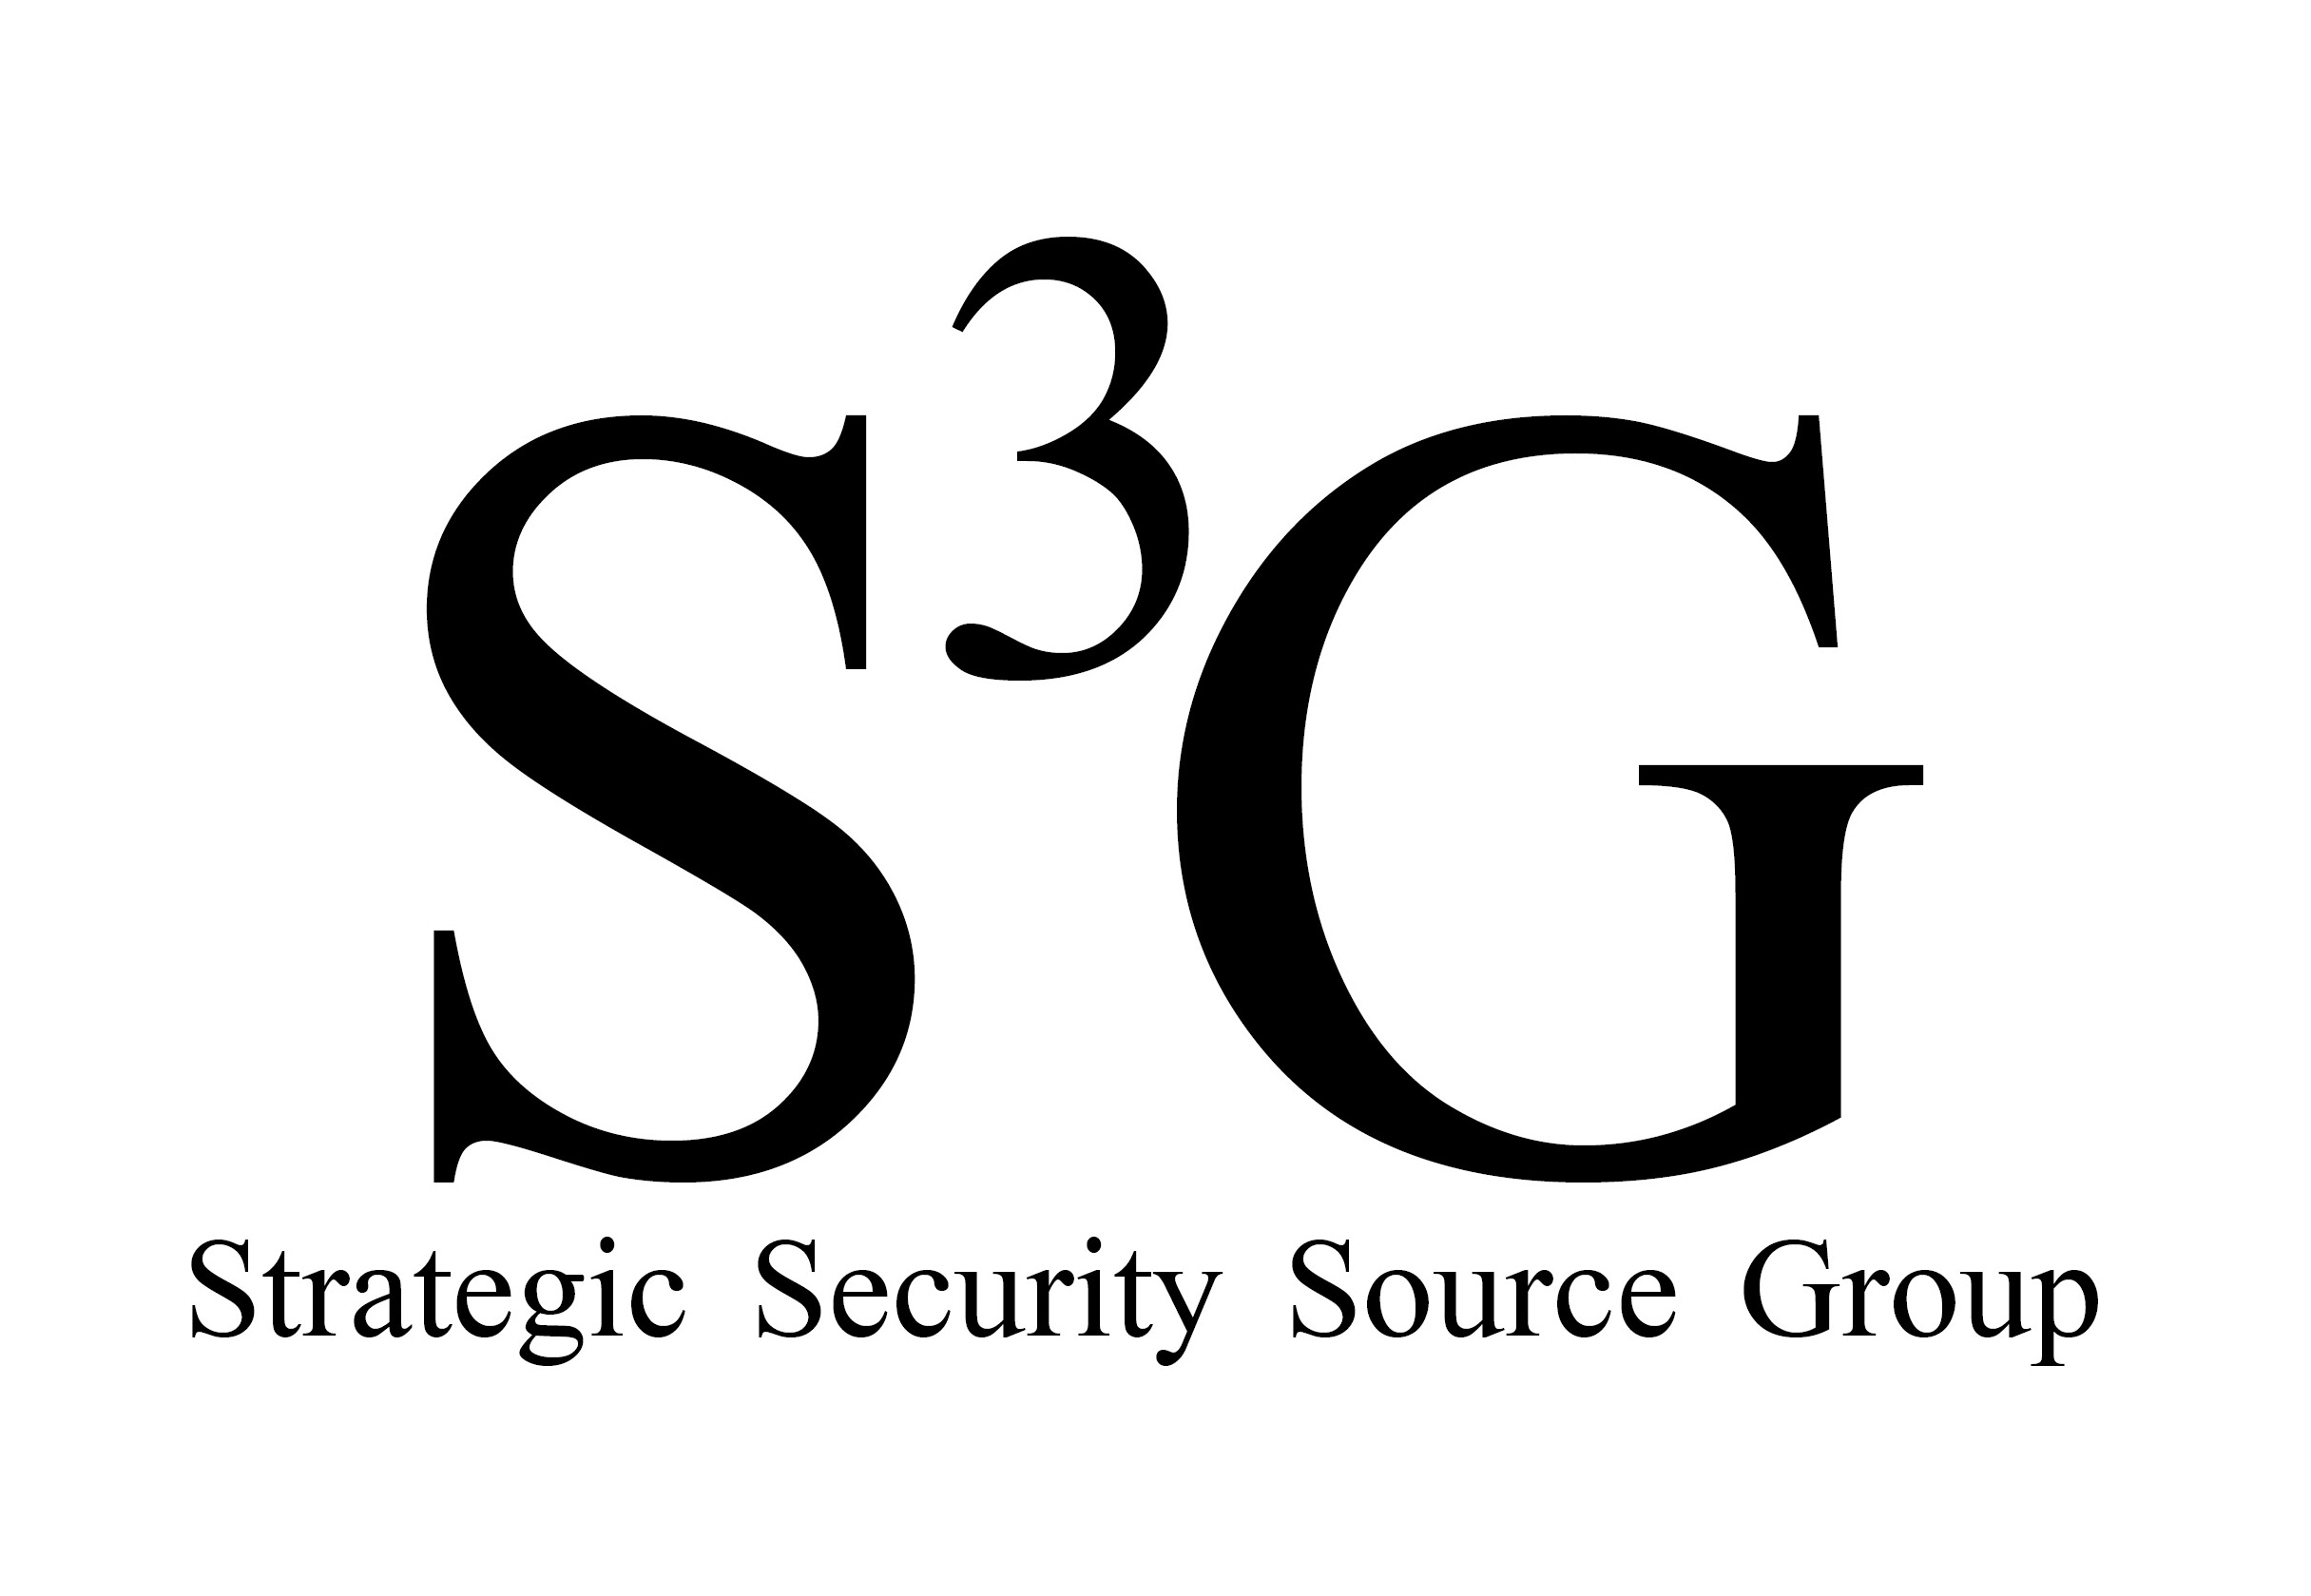 Strategic Security Source Group